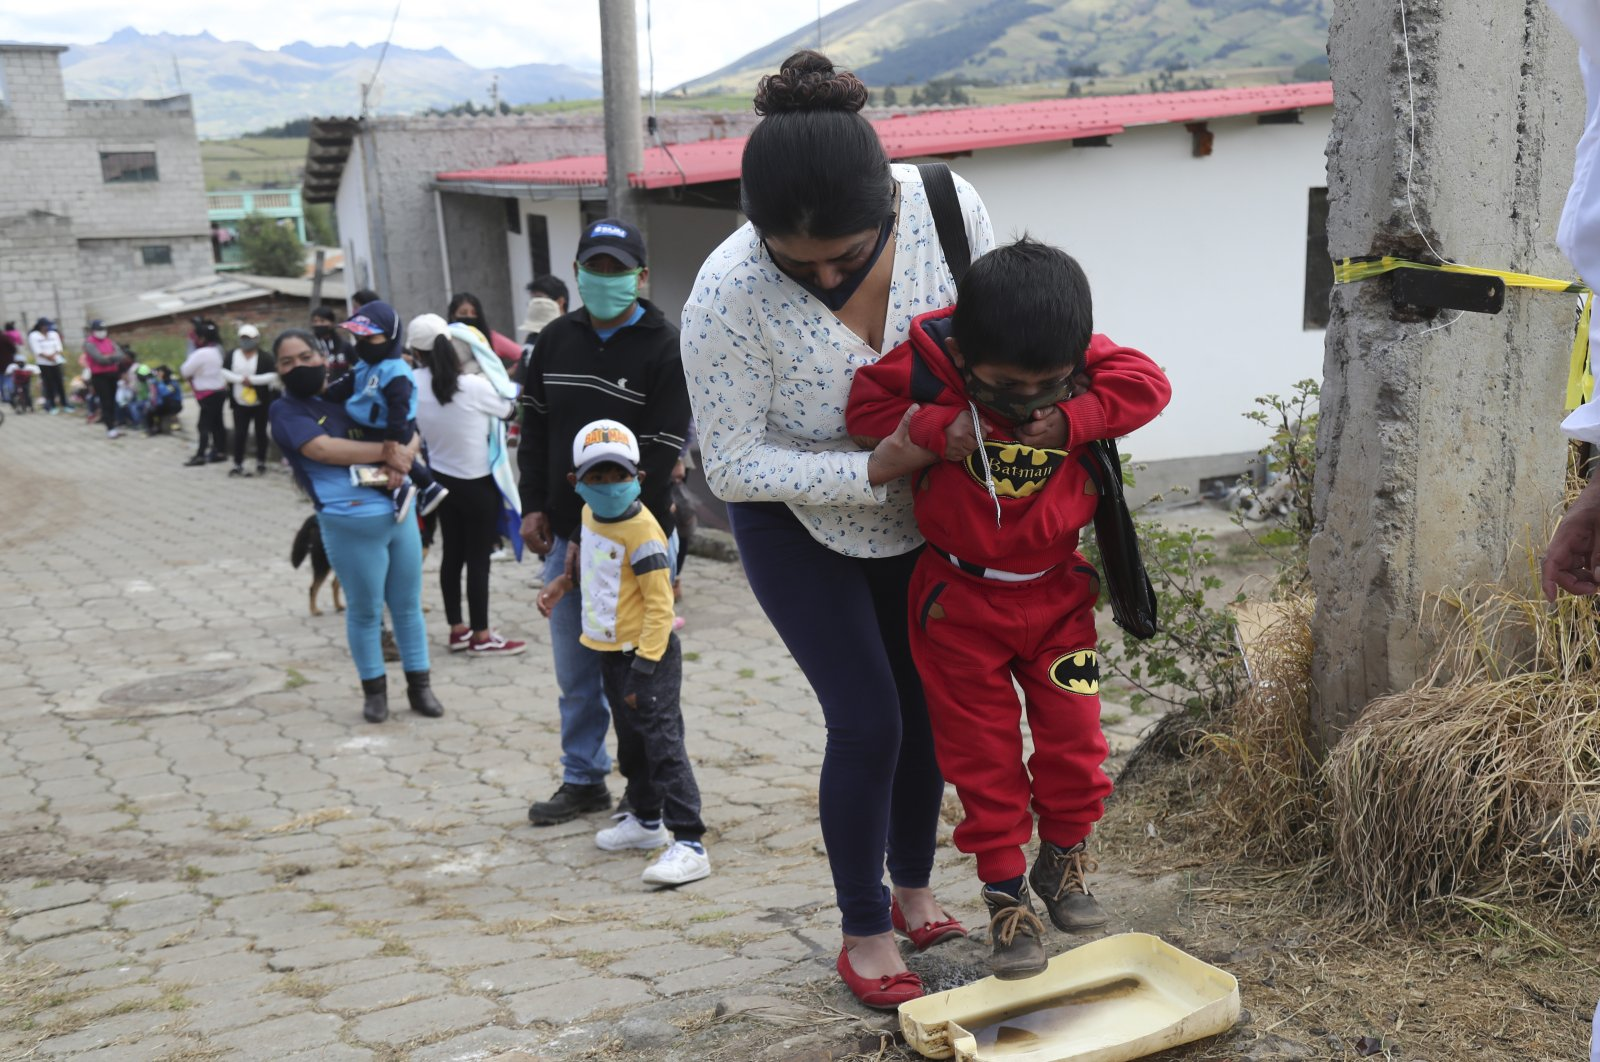 A woman helps her son to disinfect his shoes before entering the Cariacu stadium, Ecuador, June 17, 2020. (AP Photo)